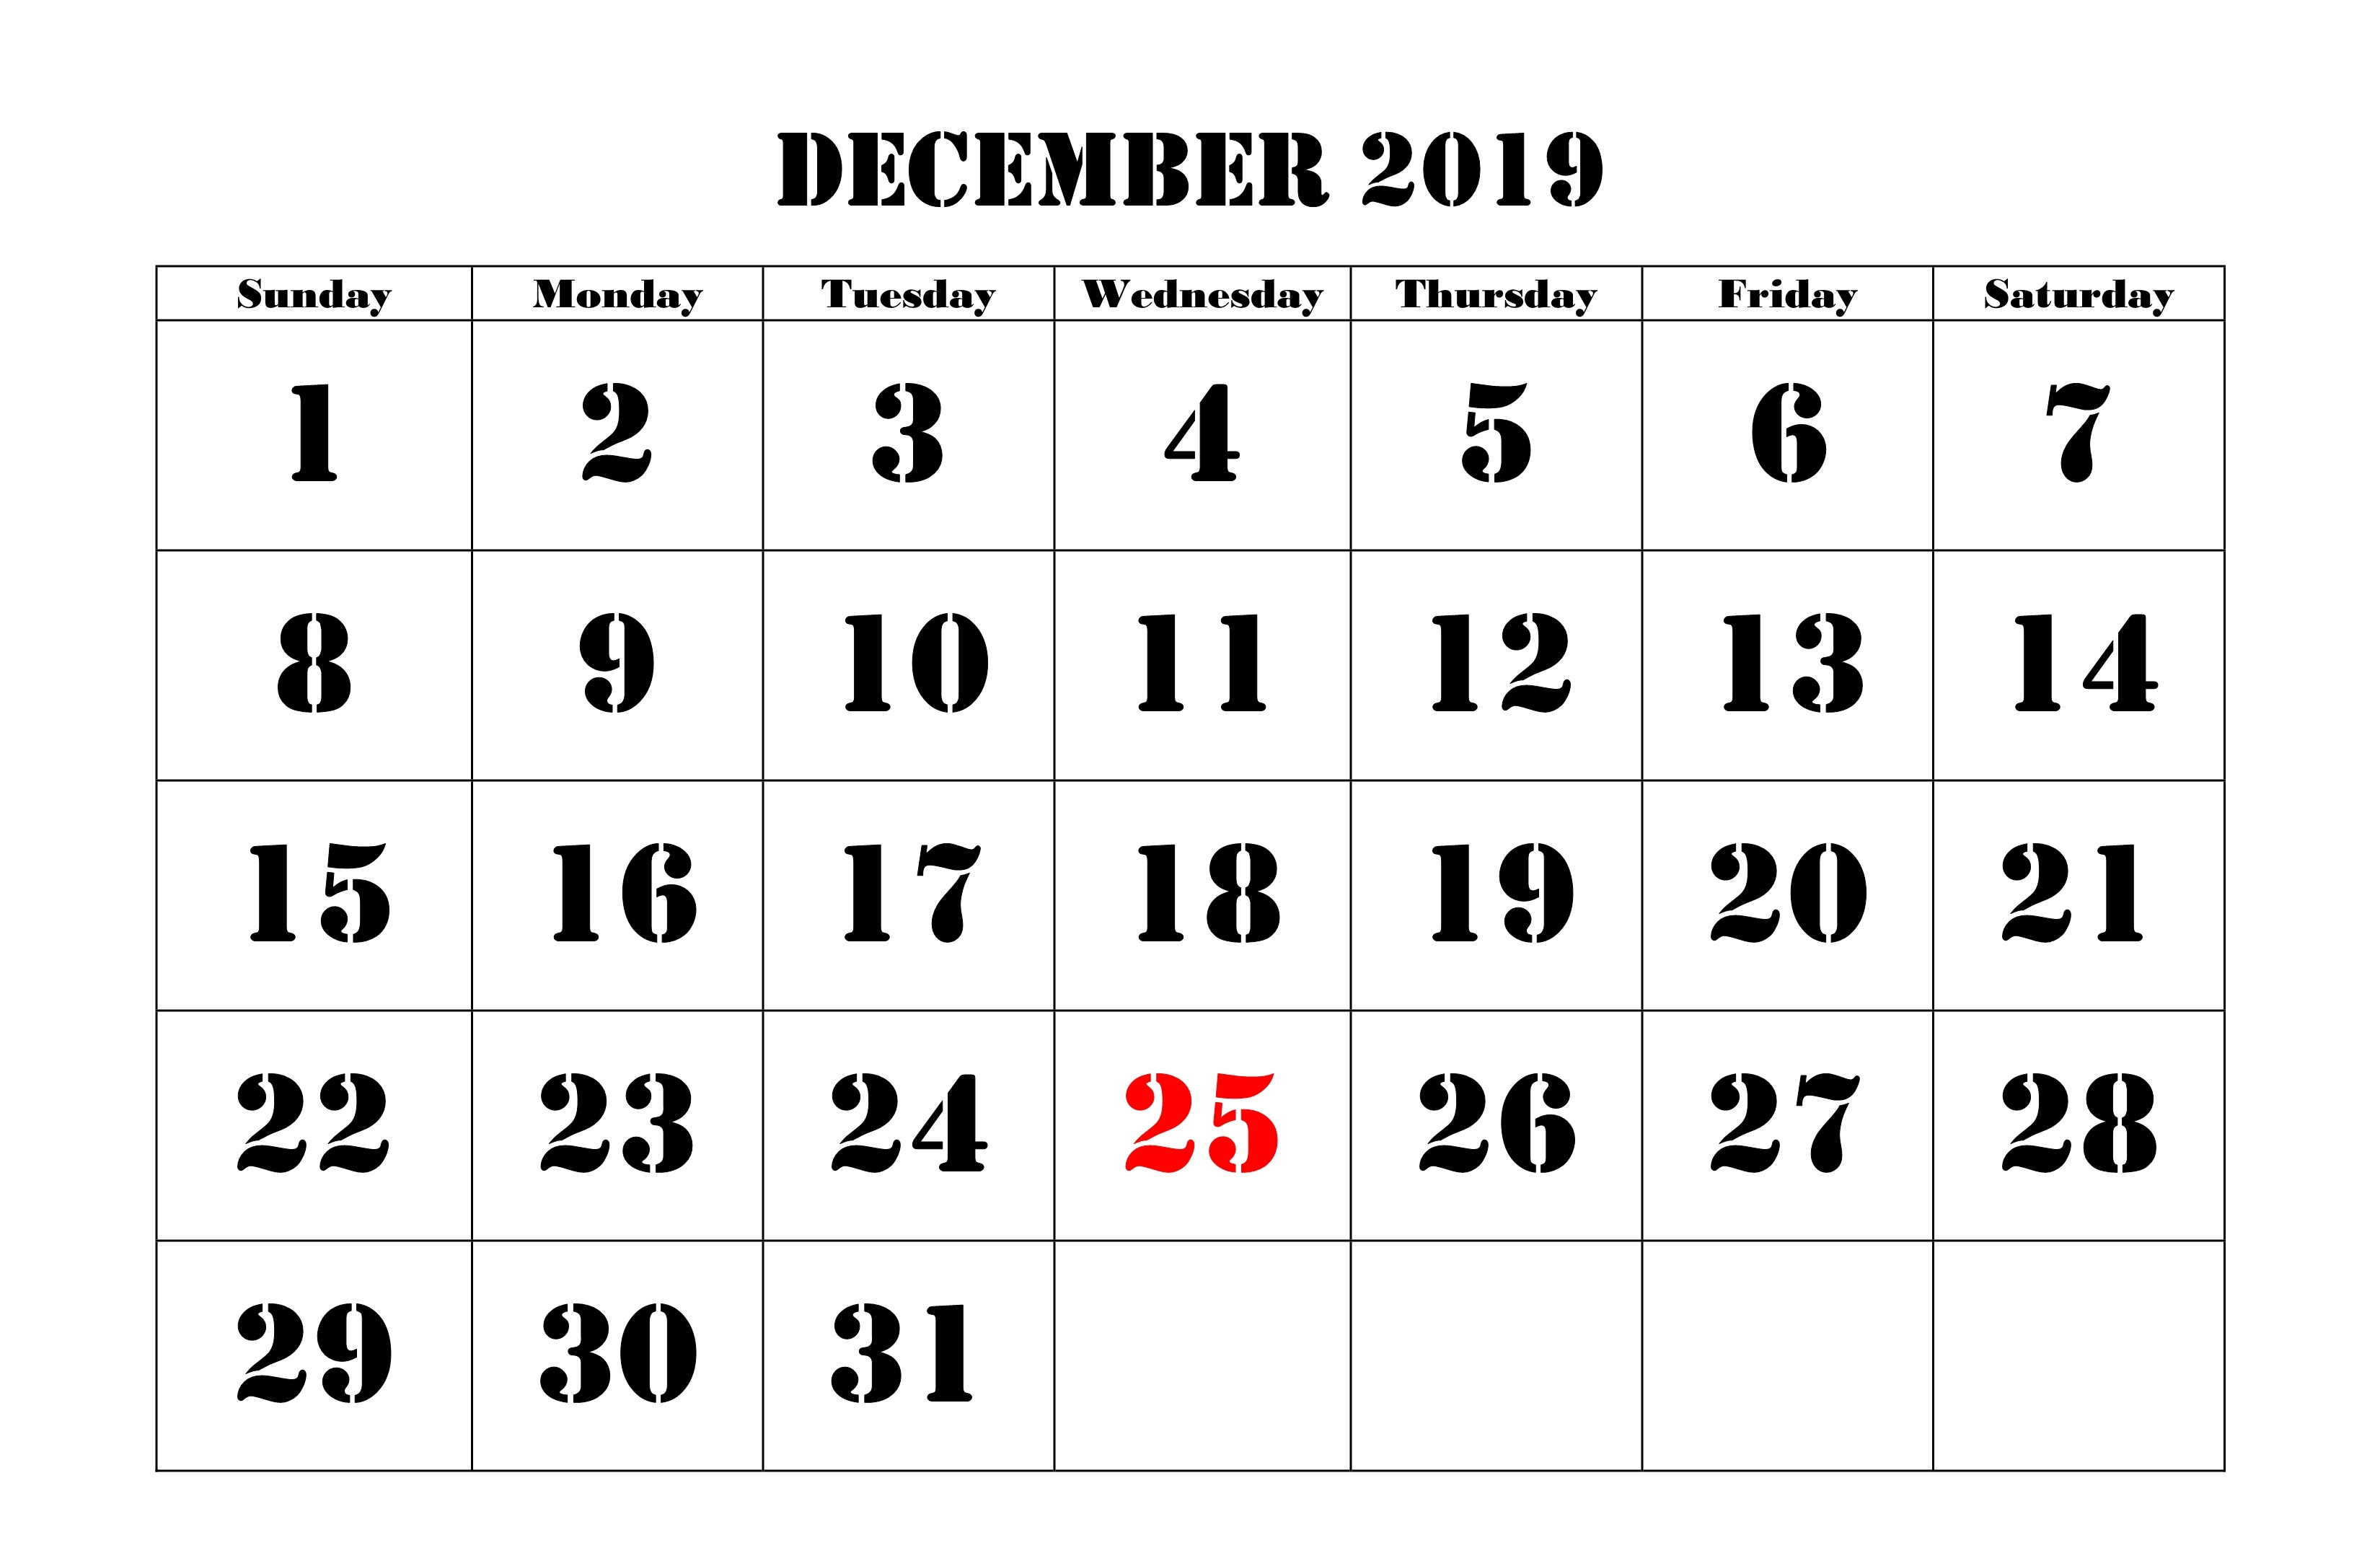 Holidays Calendar of December 2019 India